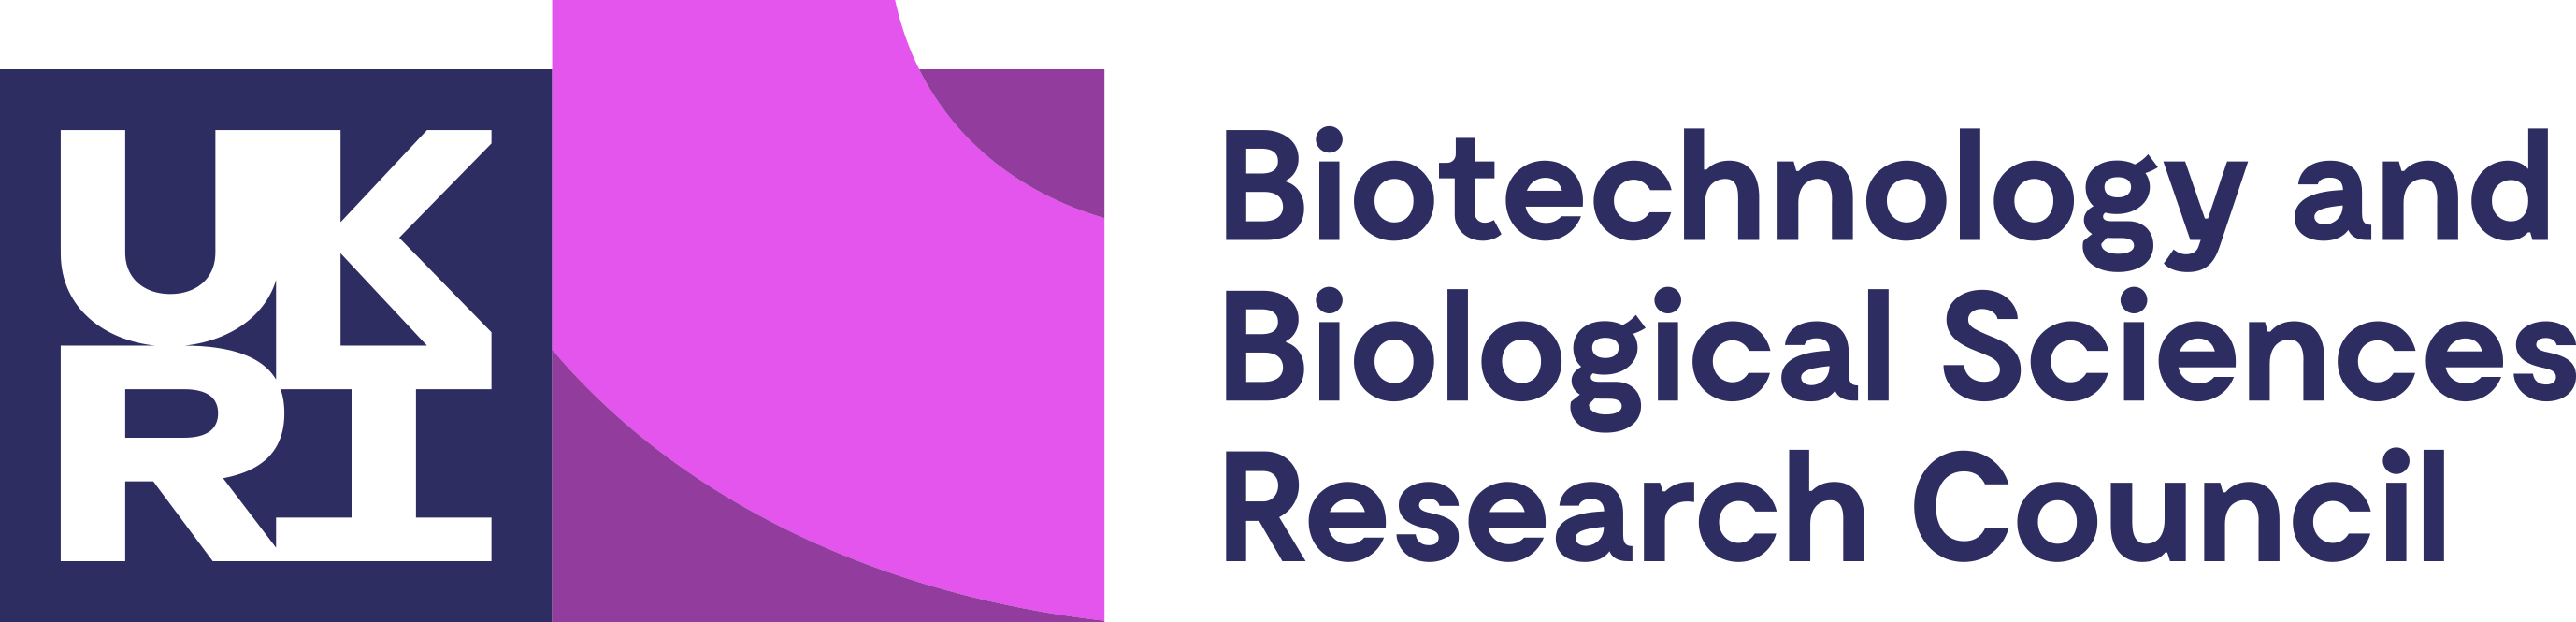 UKRI Biotechnology and Biological Sciences Research Council